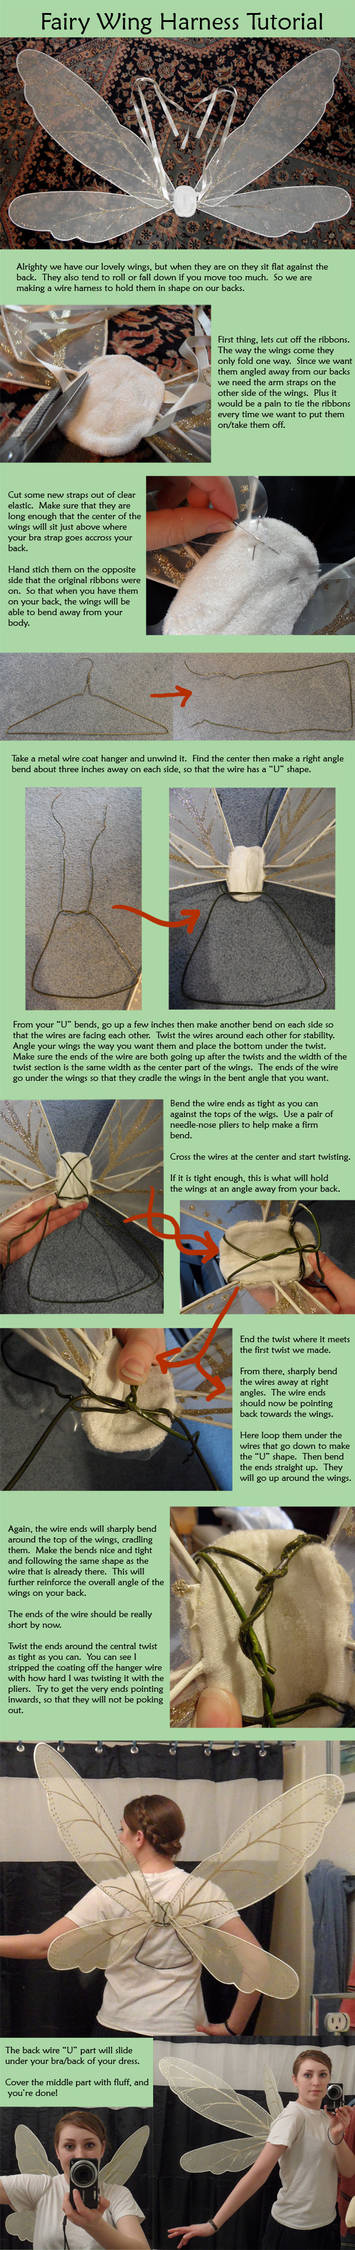 Fairy Wing Wire Harness Tutorial By Naerko On Deviantart